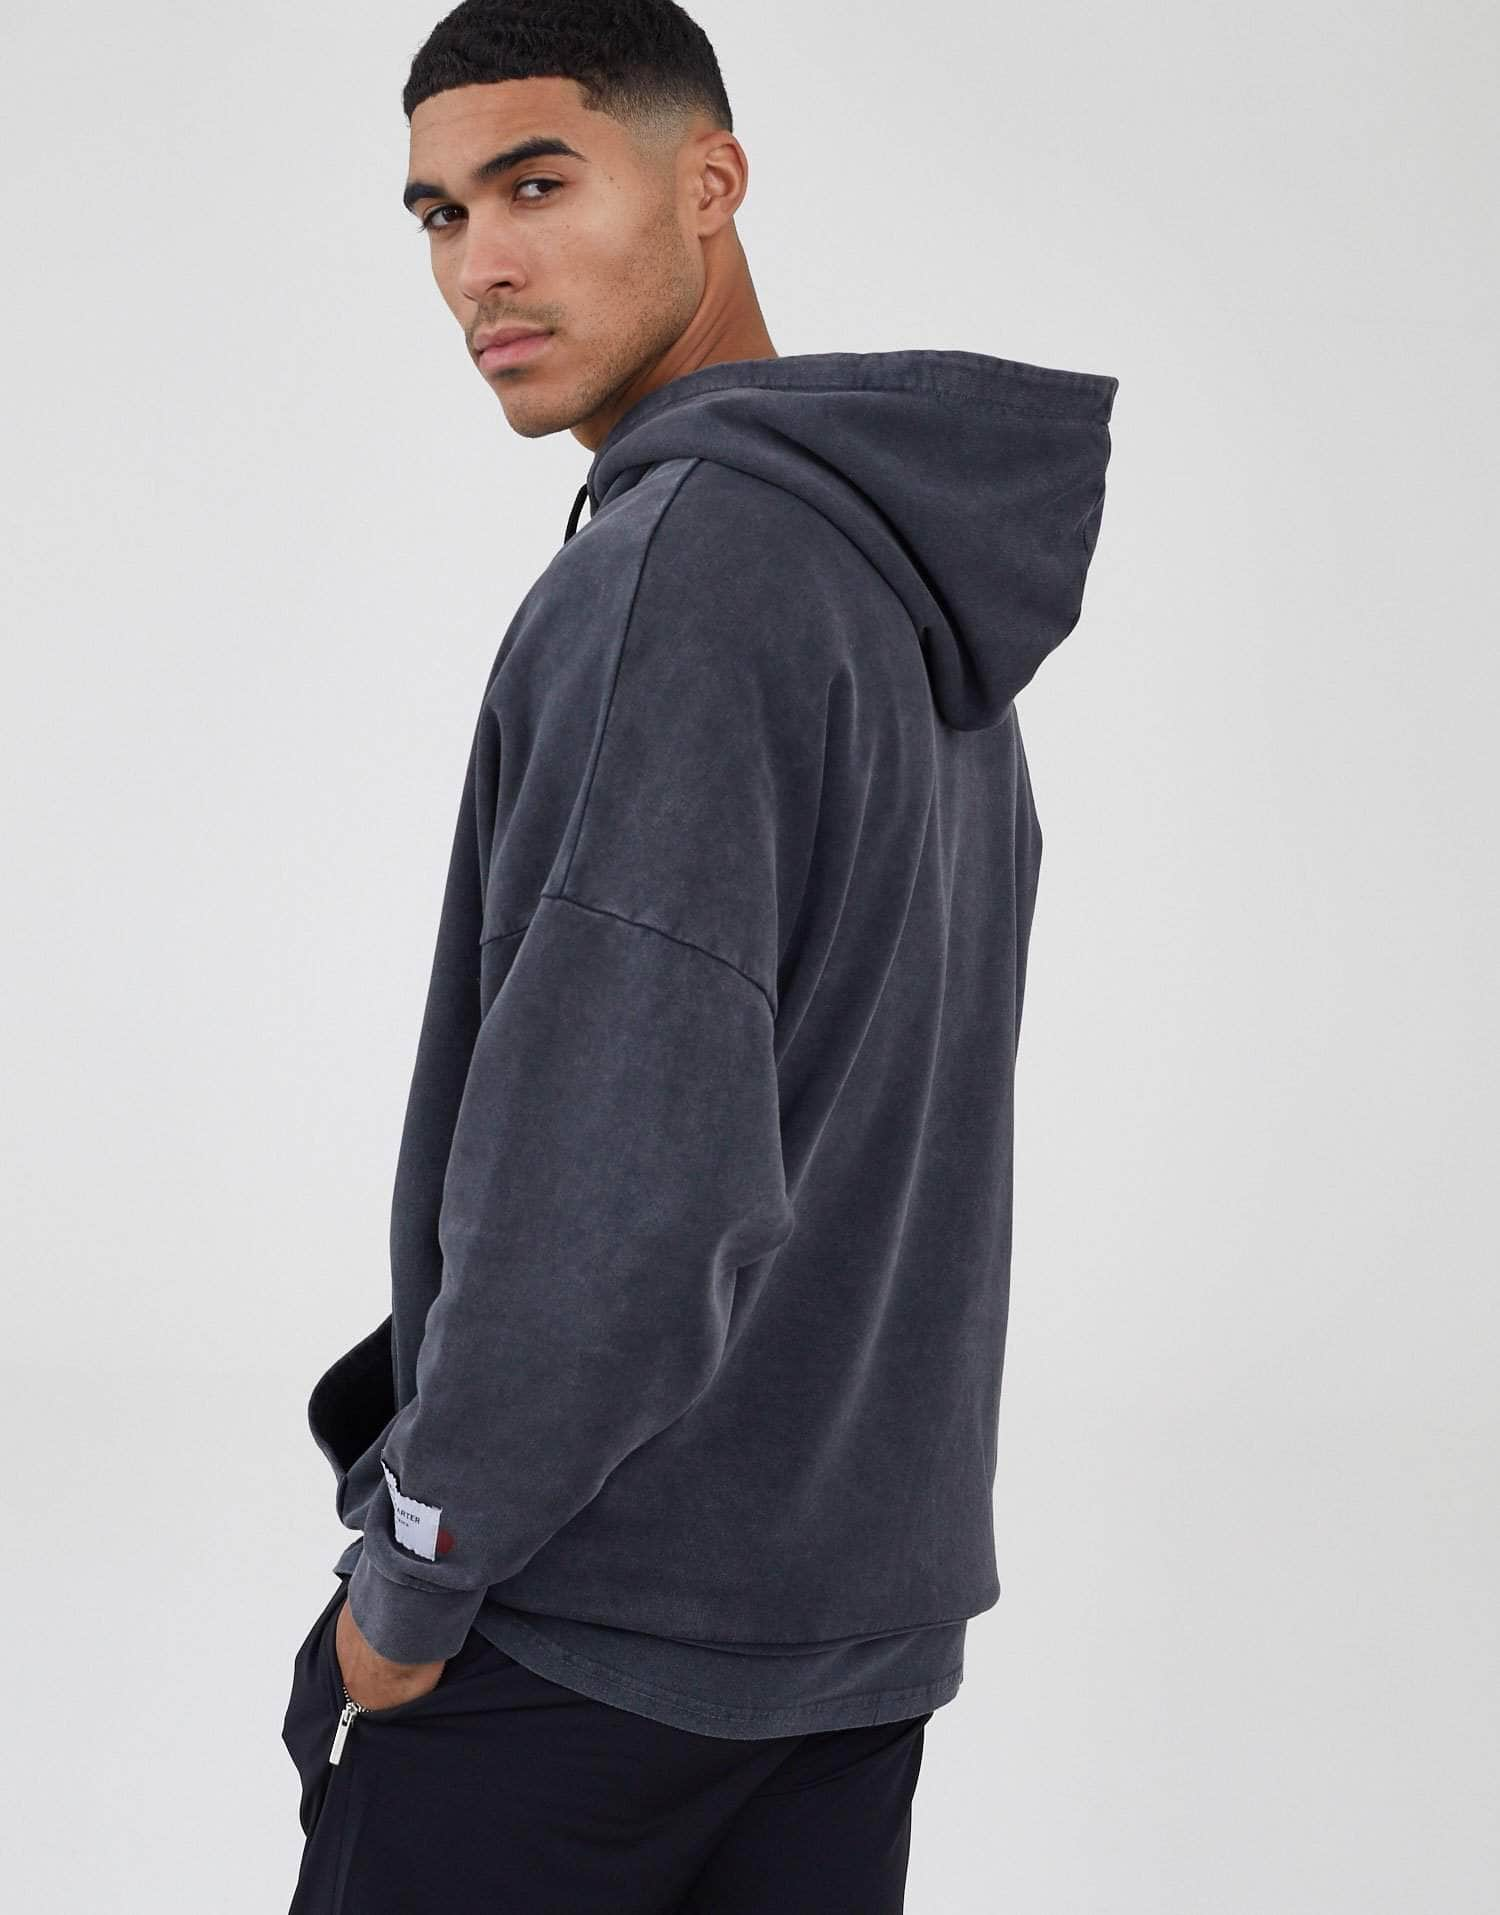 Jameson Carter Hoodies, not-sale Harris Oversized Hoodie - Acid Wash